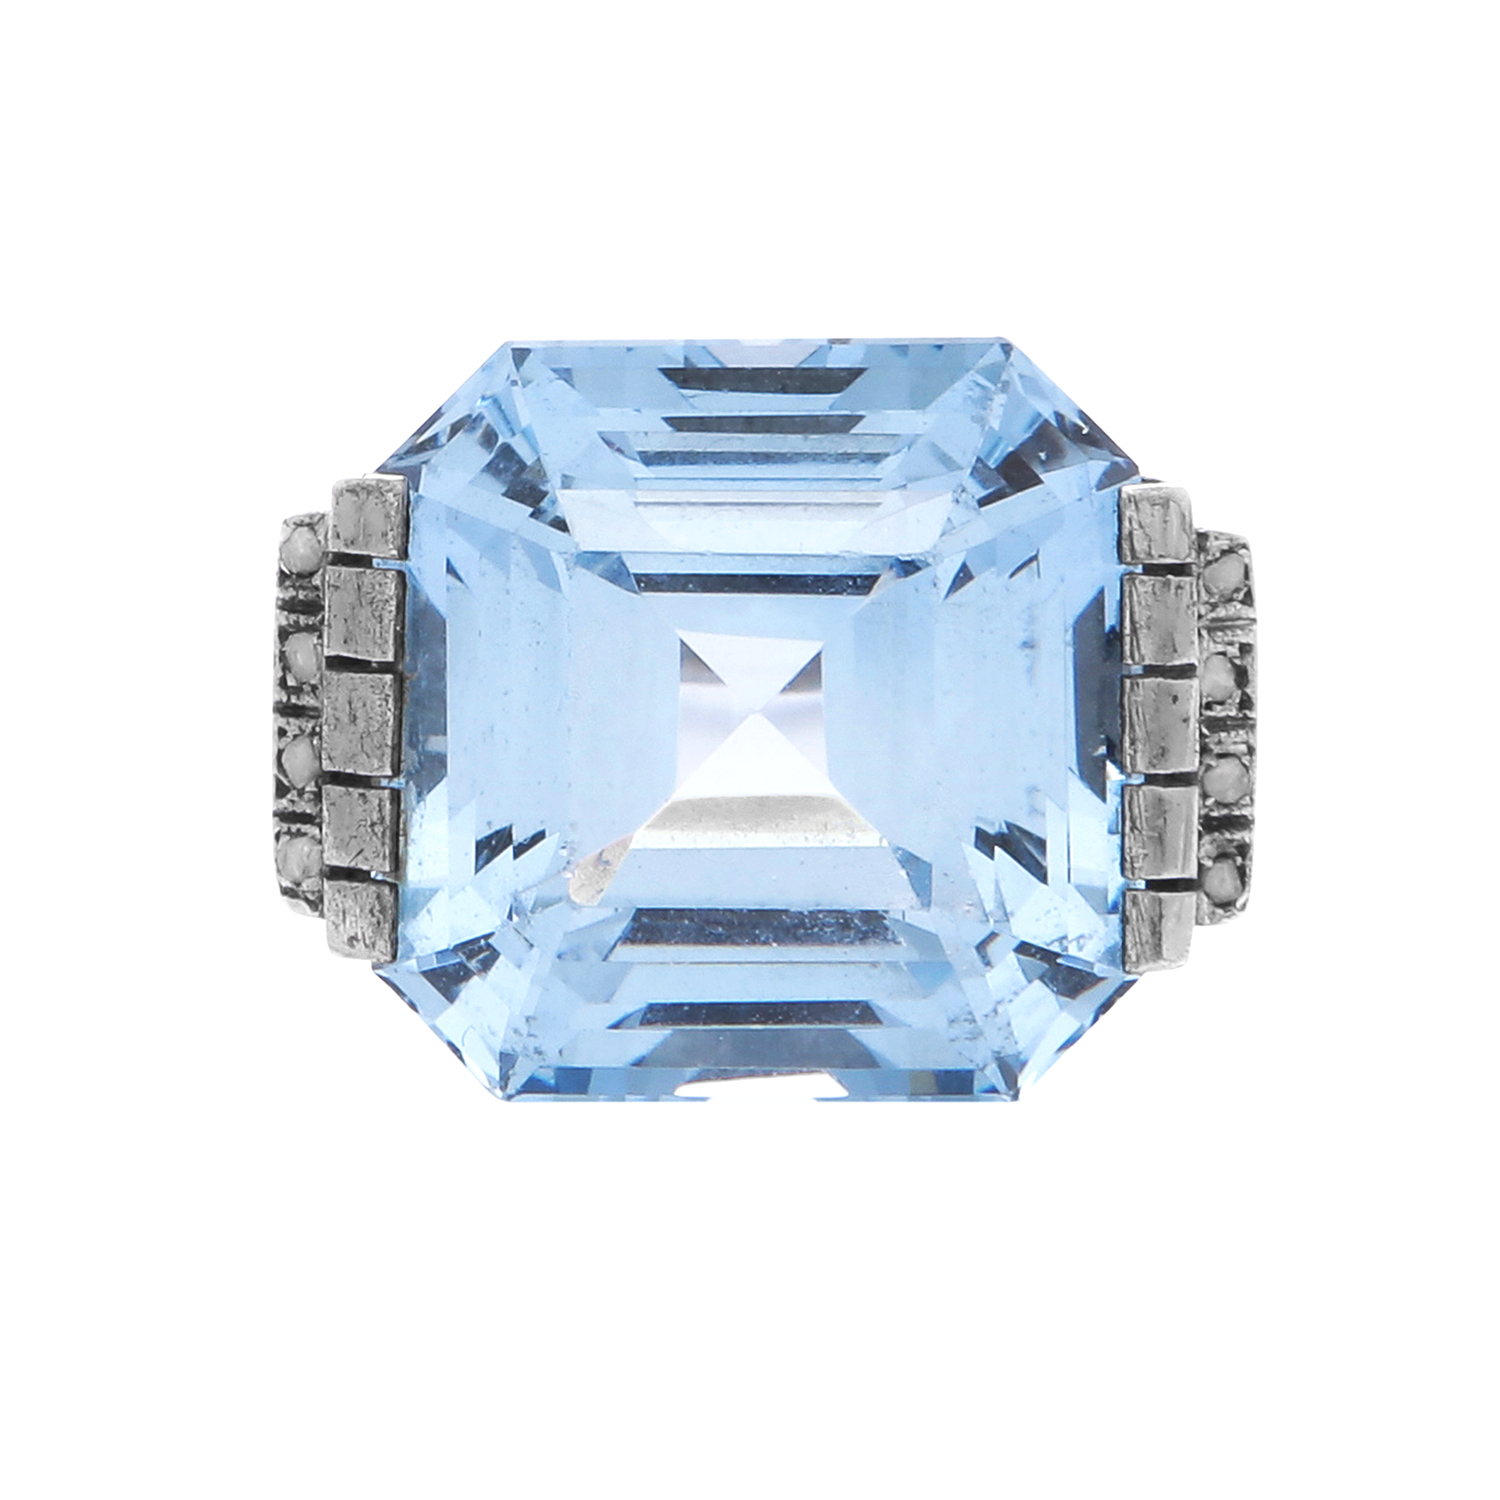 Los 28 - AN ANTIQUE ART DECO AQUAMARINE / SPINEL AND DIAMOND DRESS RING set with a central step cut blue